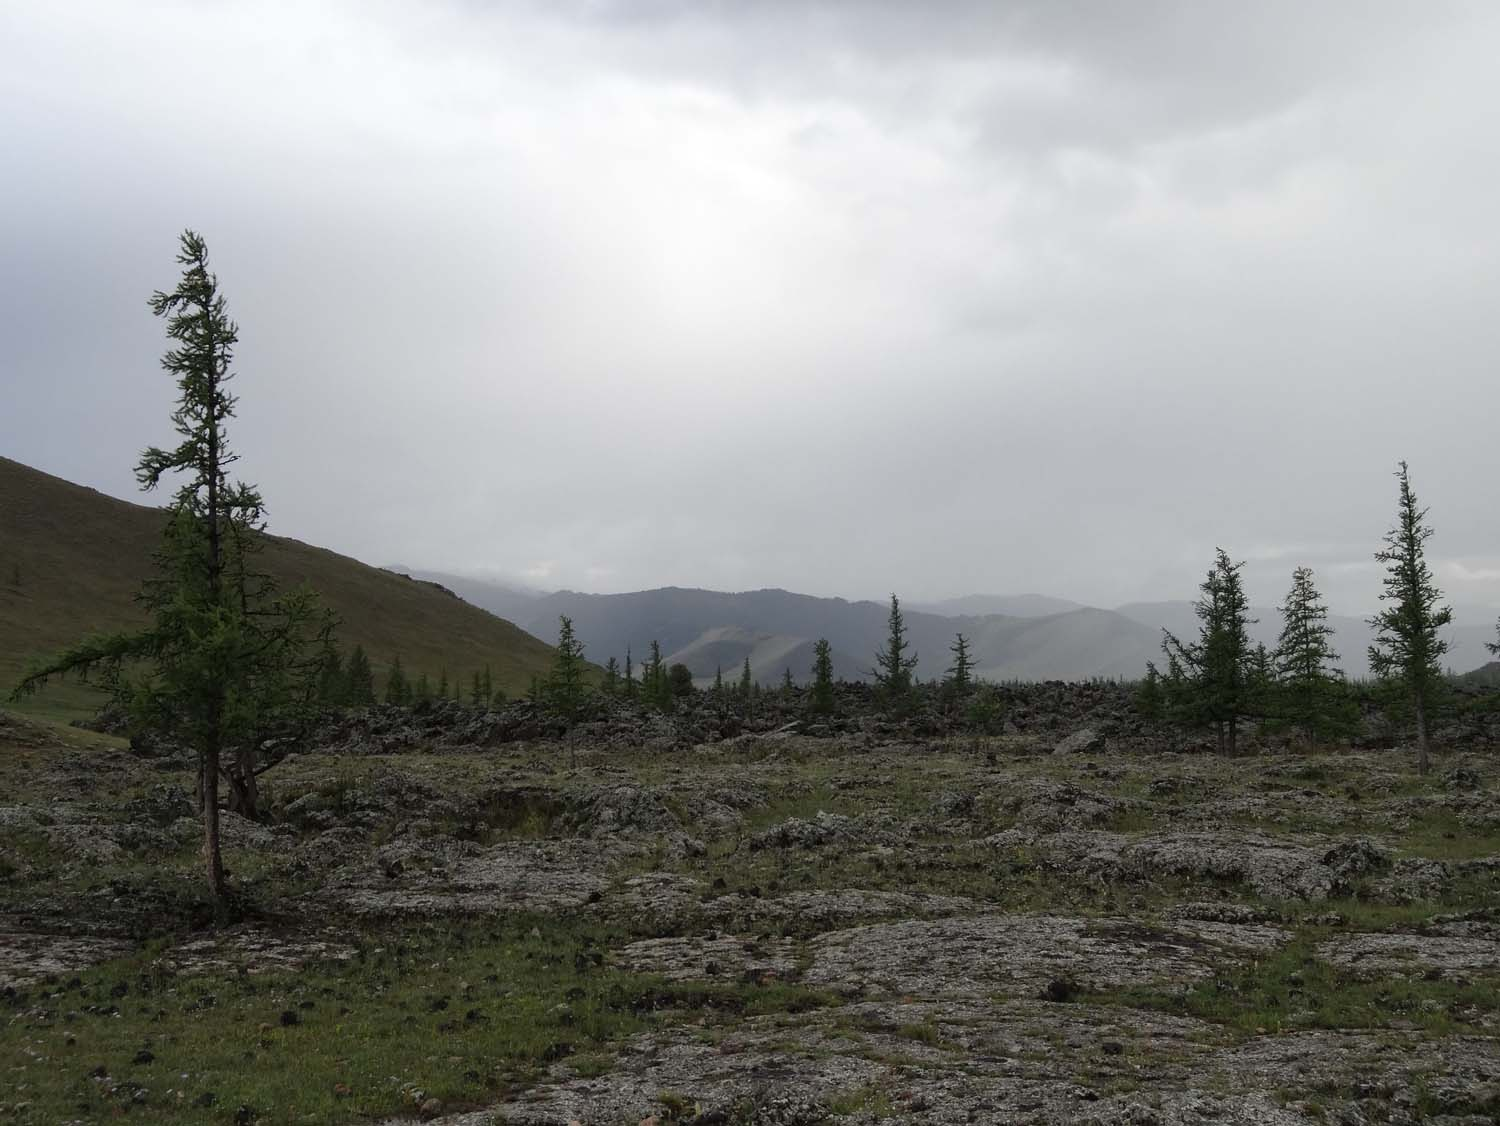 old lava fields and pine trees